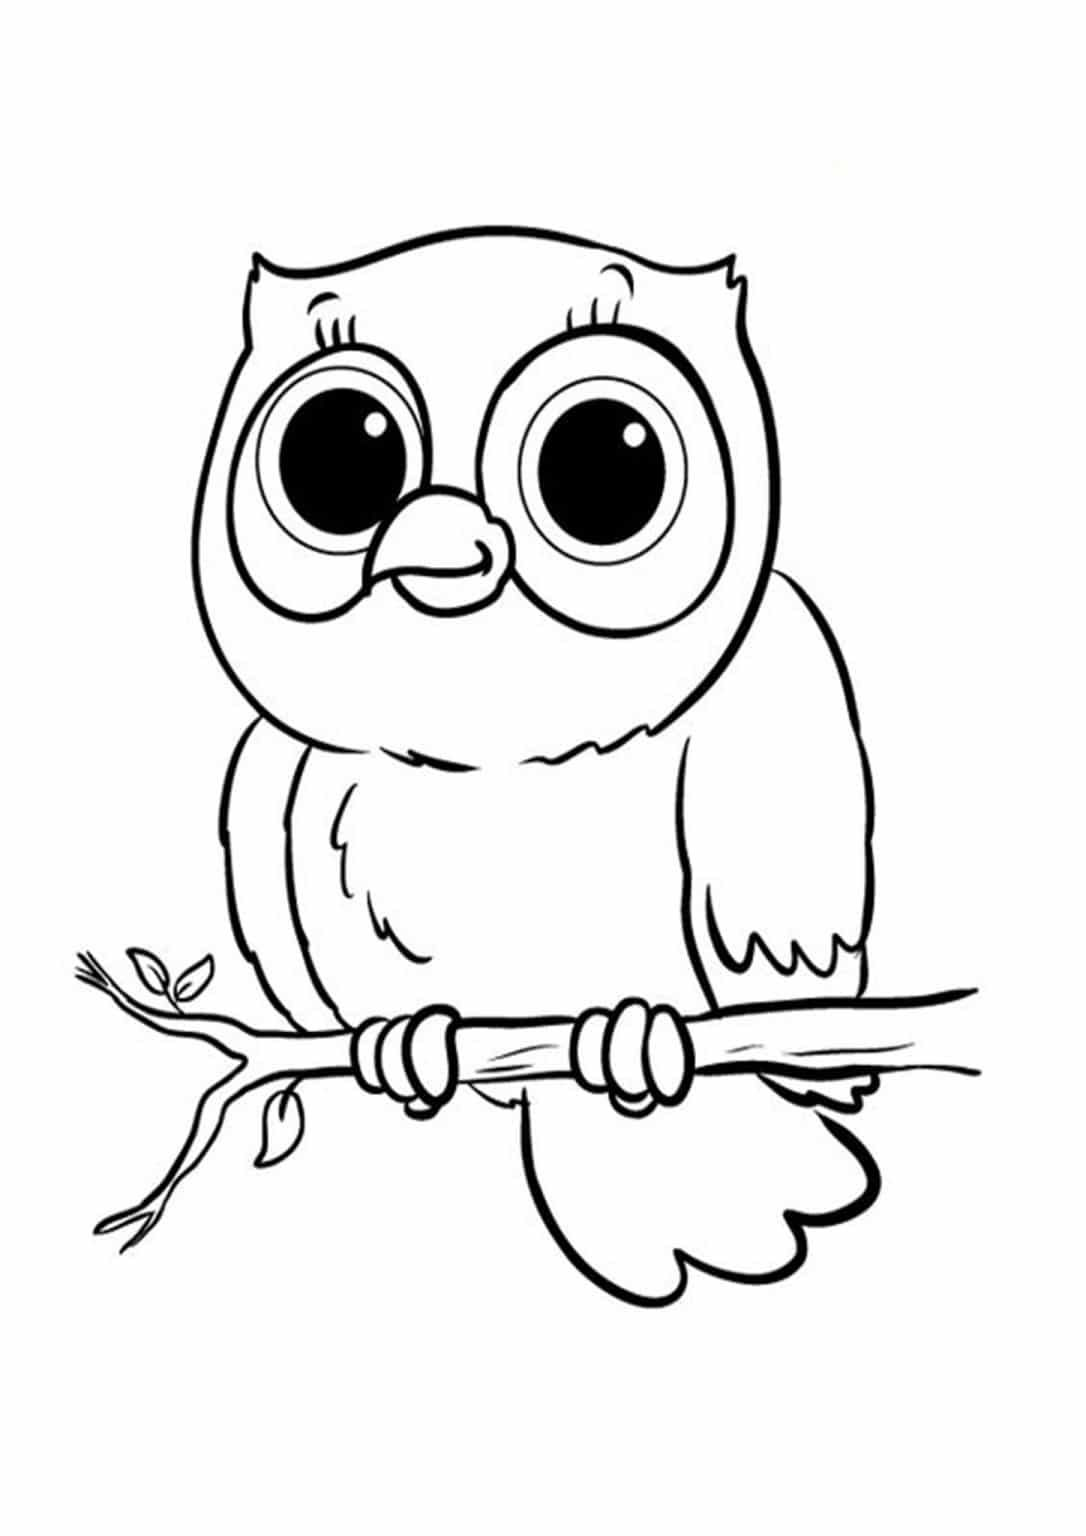 free printable coloring pages of owls best printable owl coloring pages for adults ruby website coloring pages of free owls printable